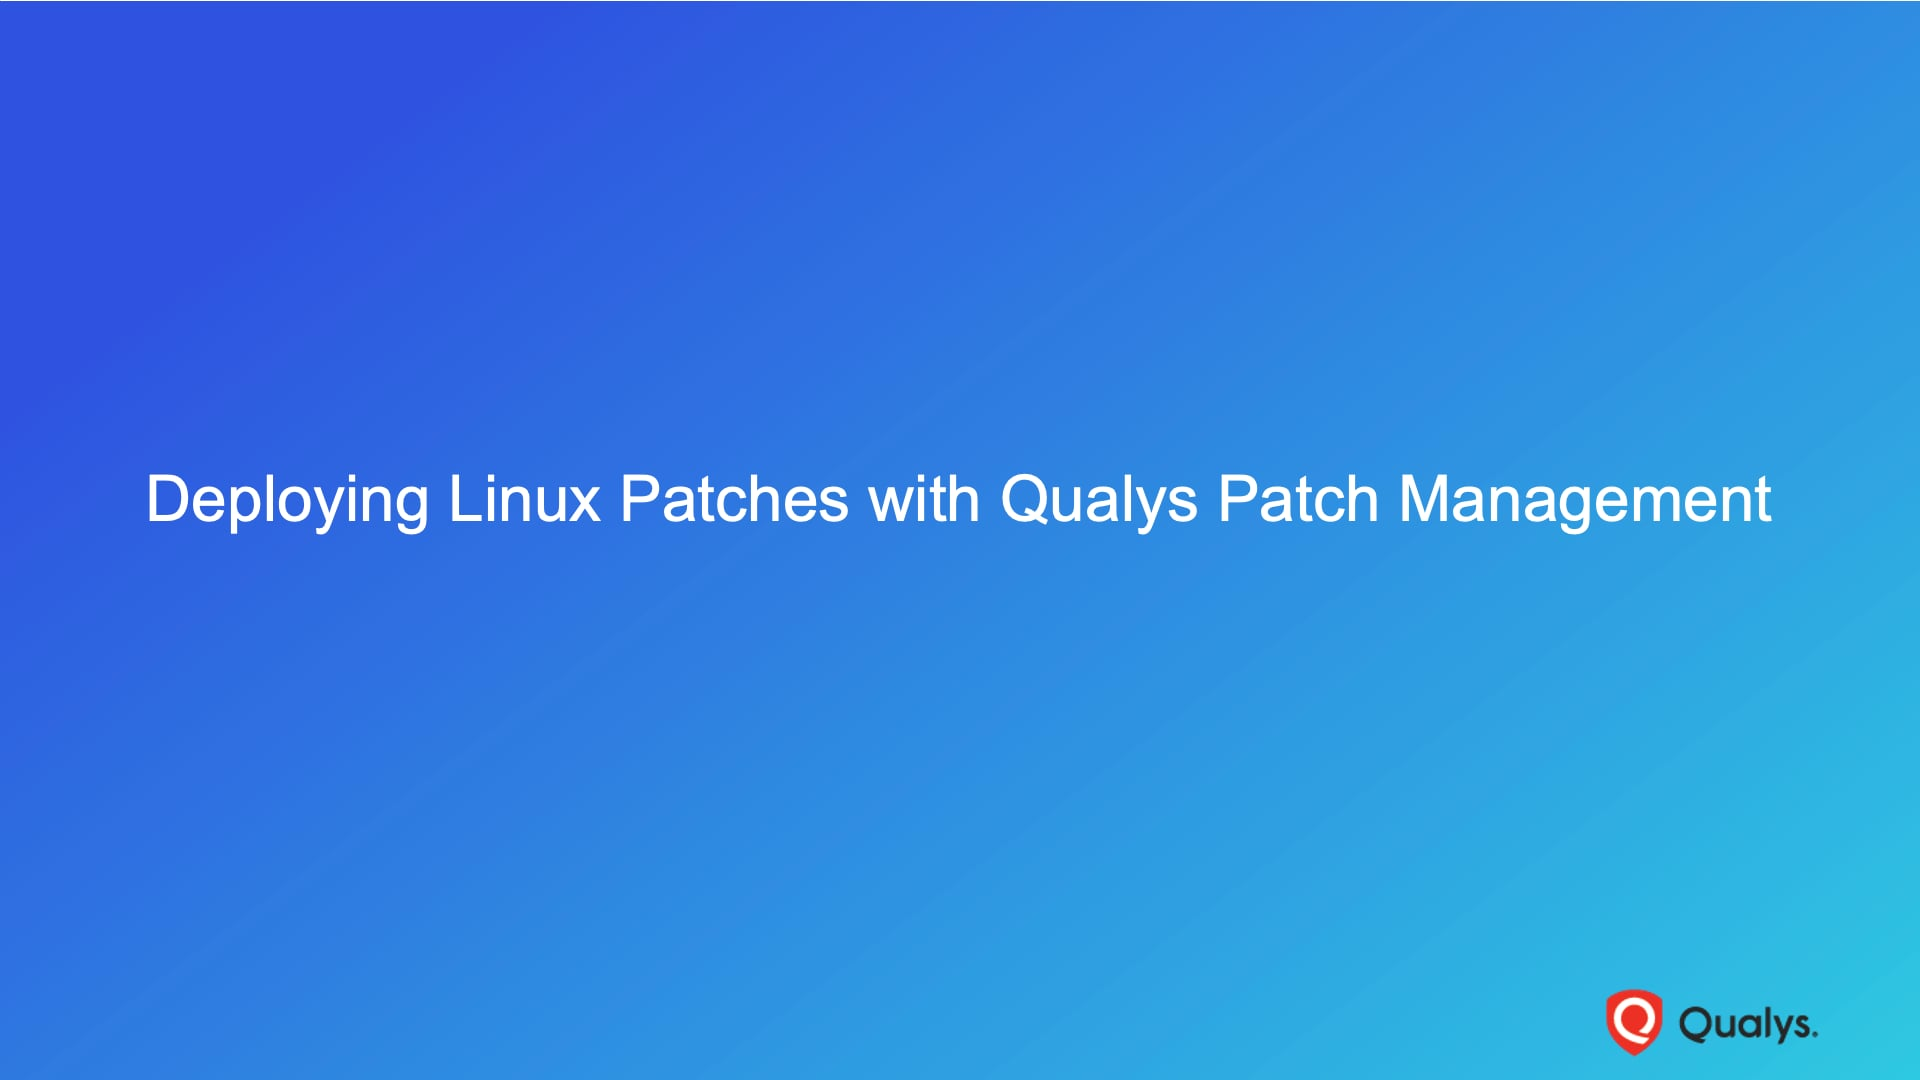 Deploying Linux Patches with Qualys Patch Management